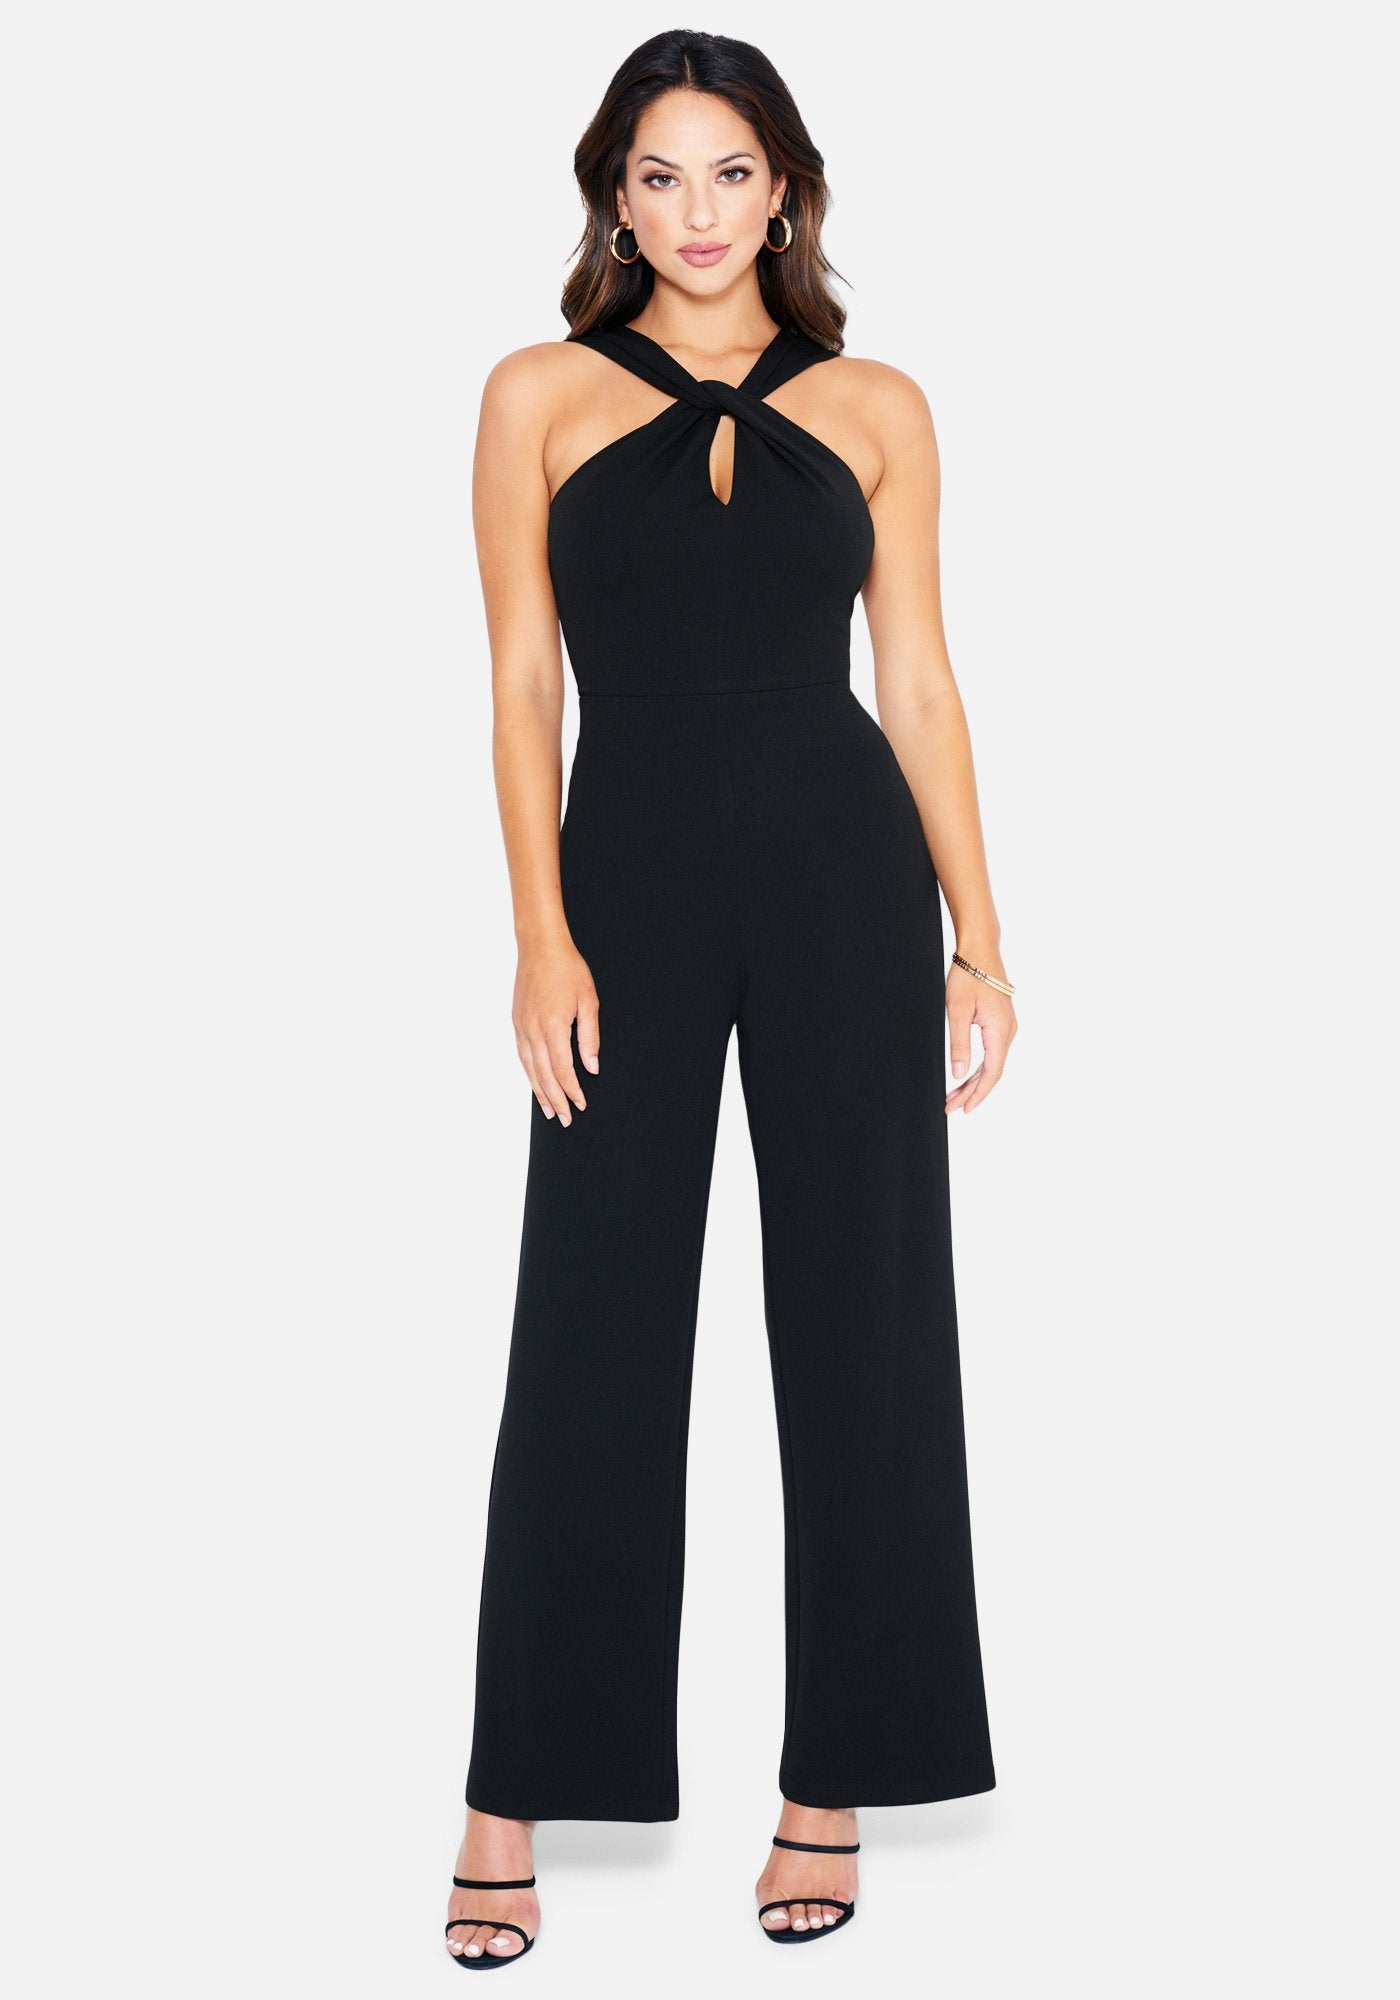 Bebe Women's Keyhole Halter Neck Jumpsuit, Size XS in Black Polyester